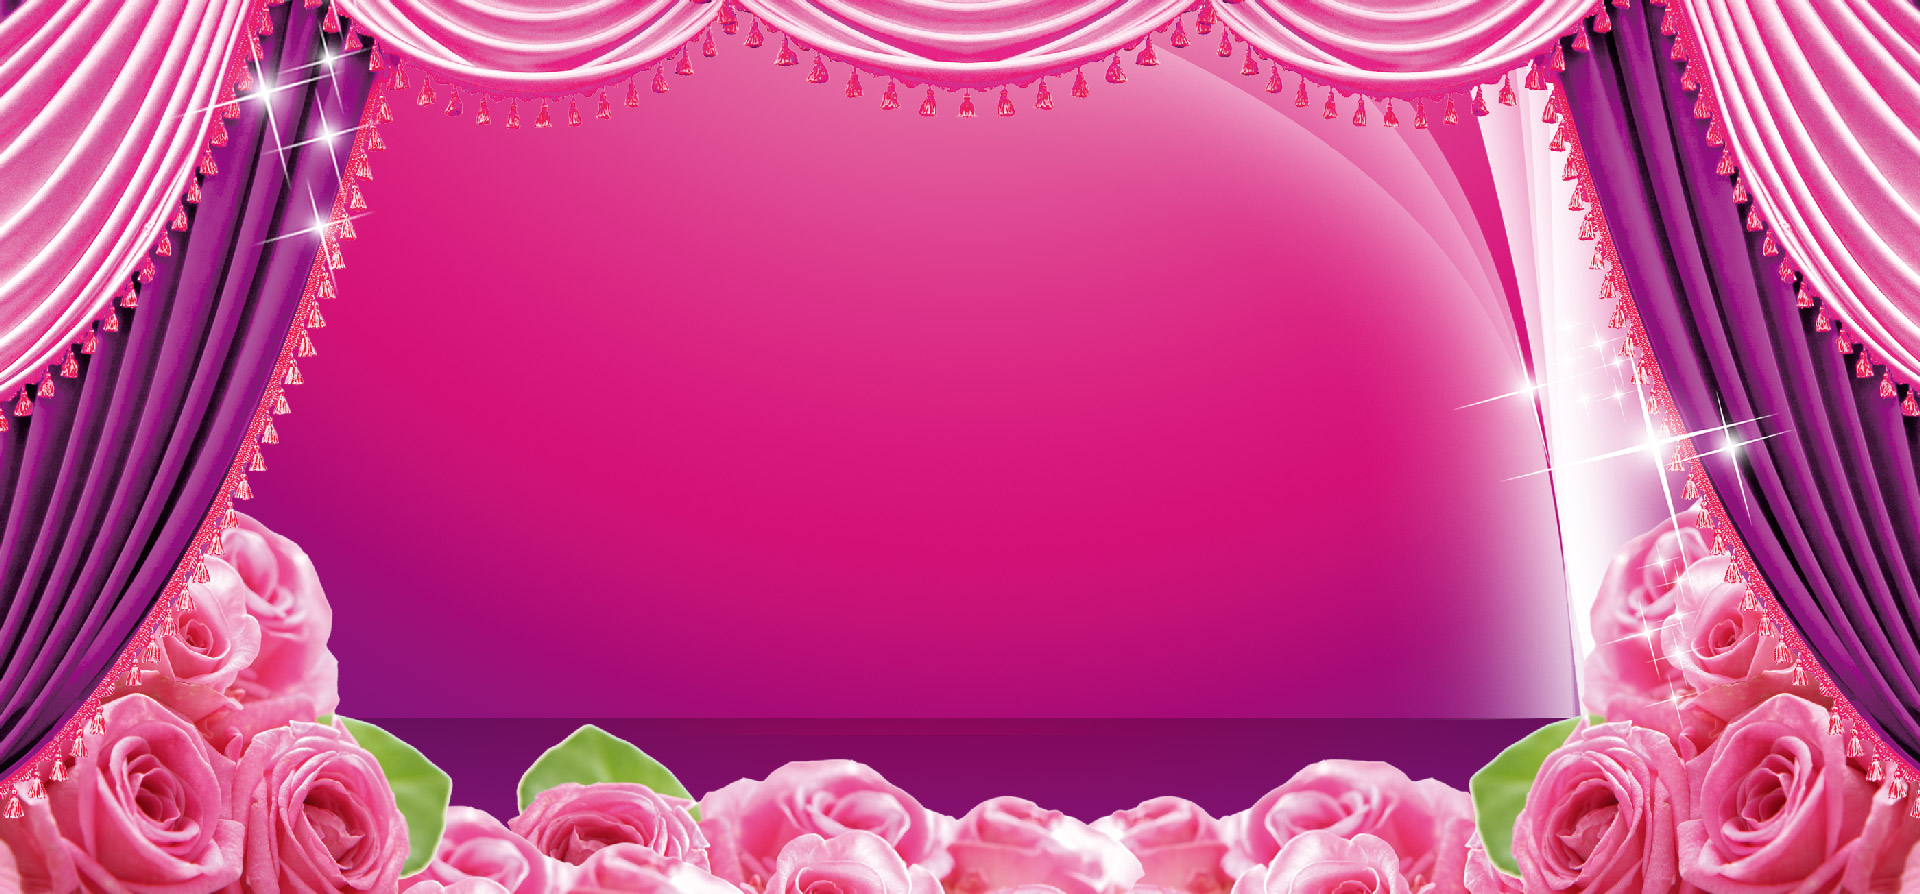 Pink Background Wedding Marriage